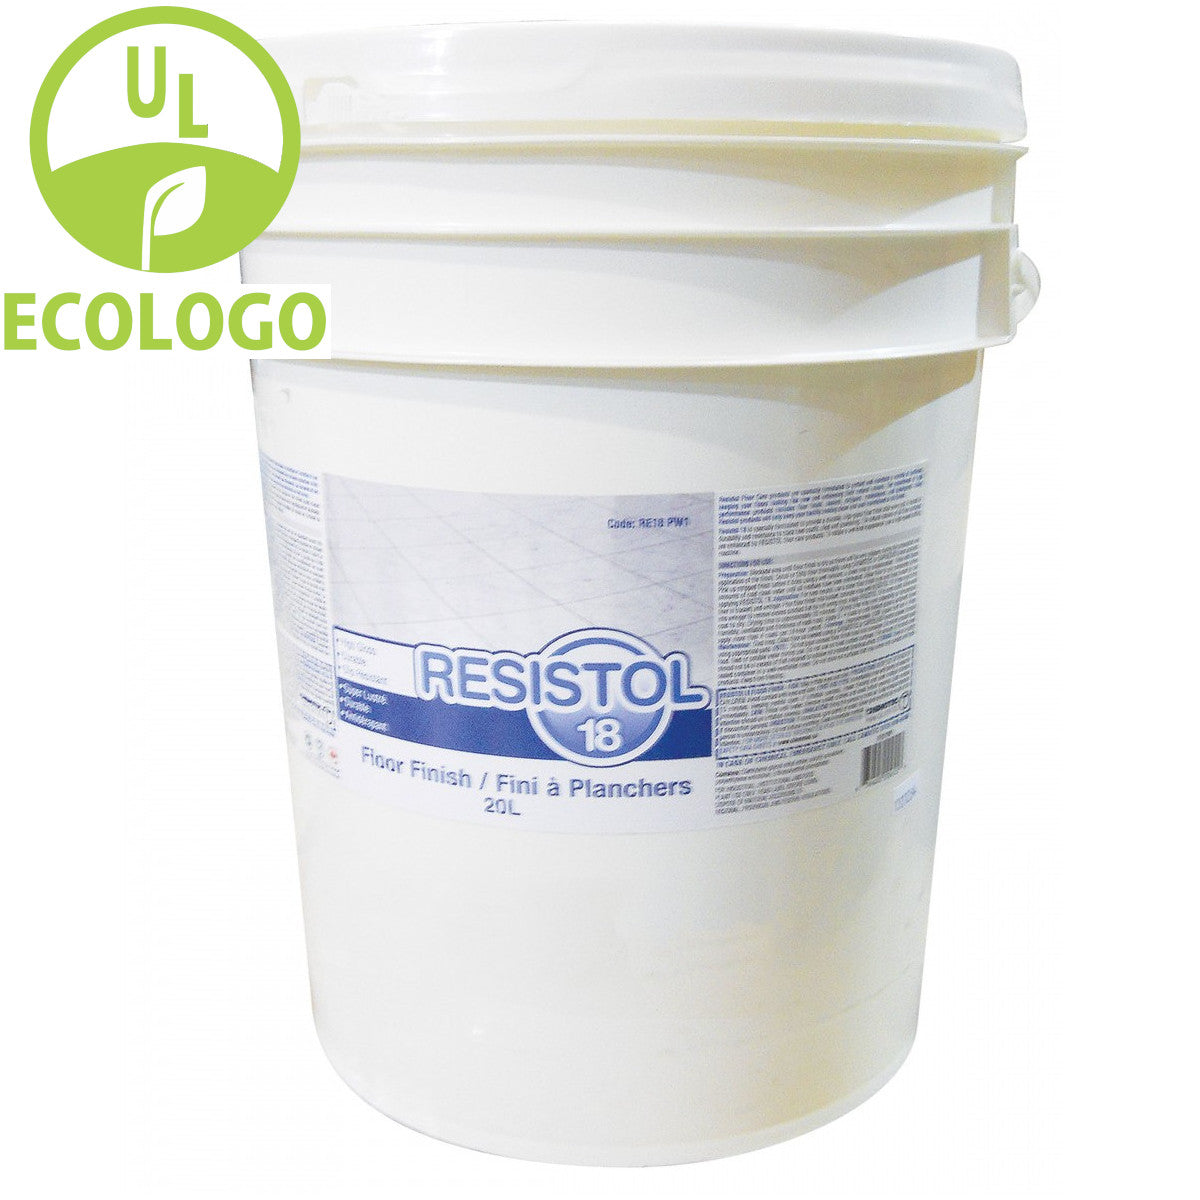 Resistol 18 - 18% Solids Floor Finish - 20L - Super Vacs